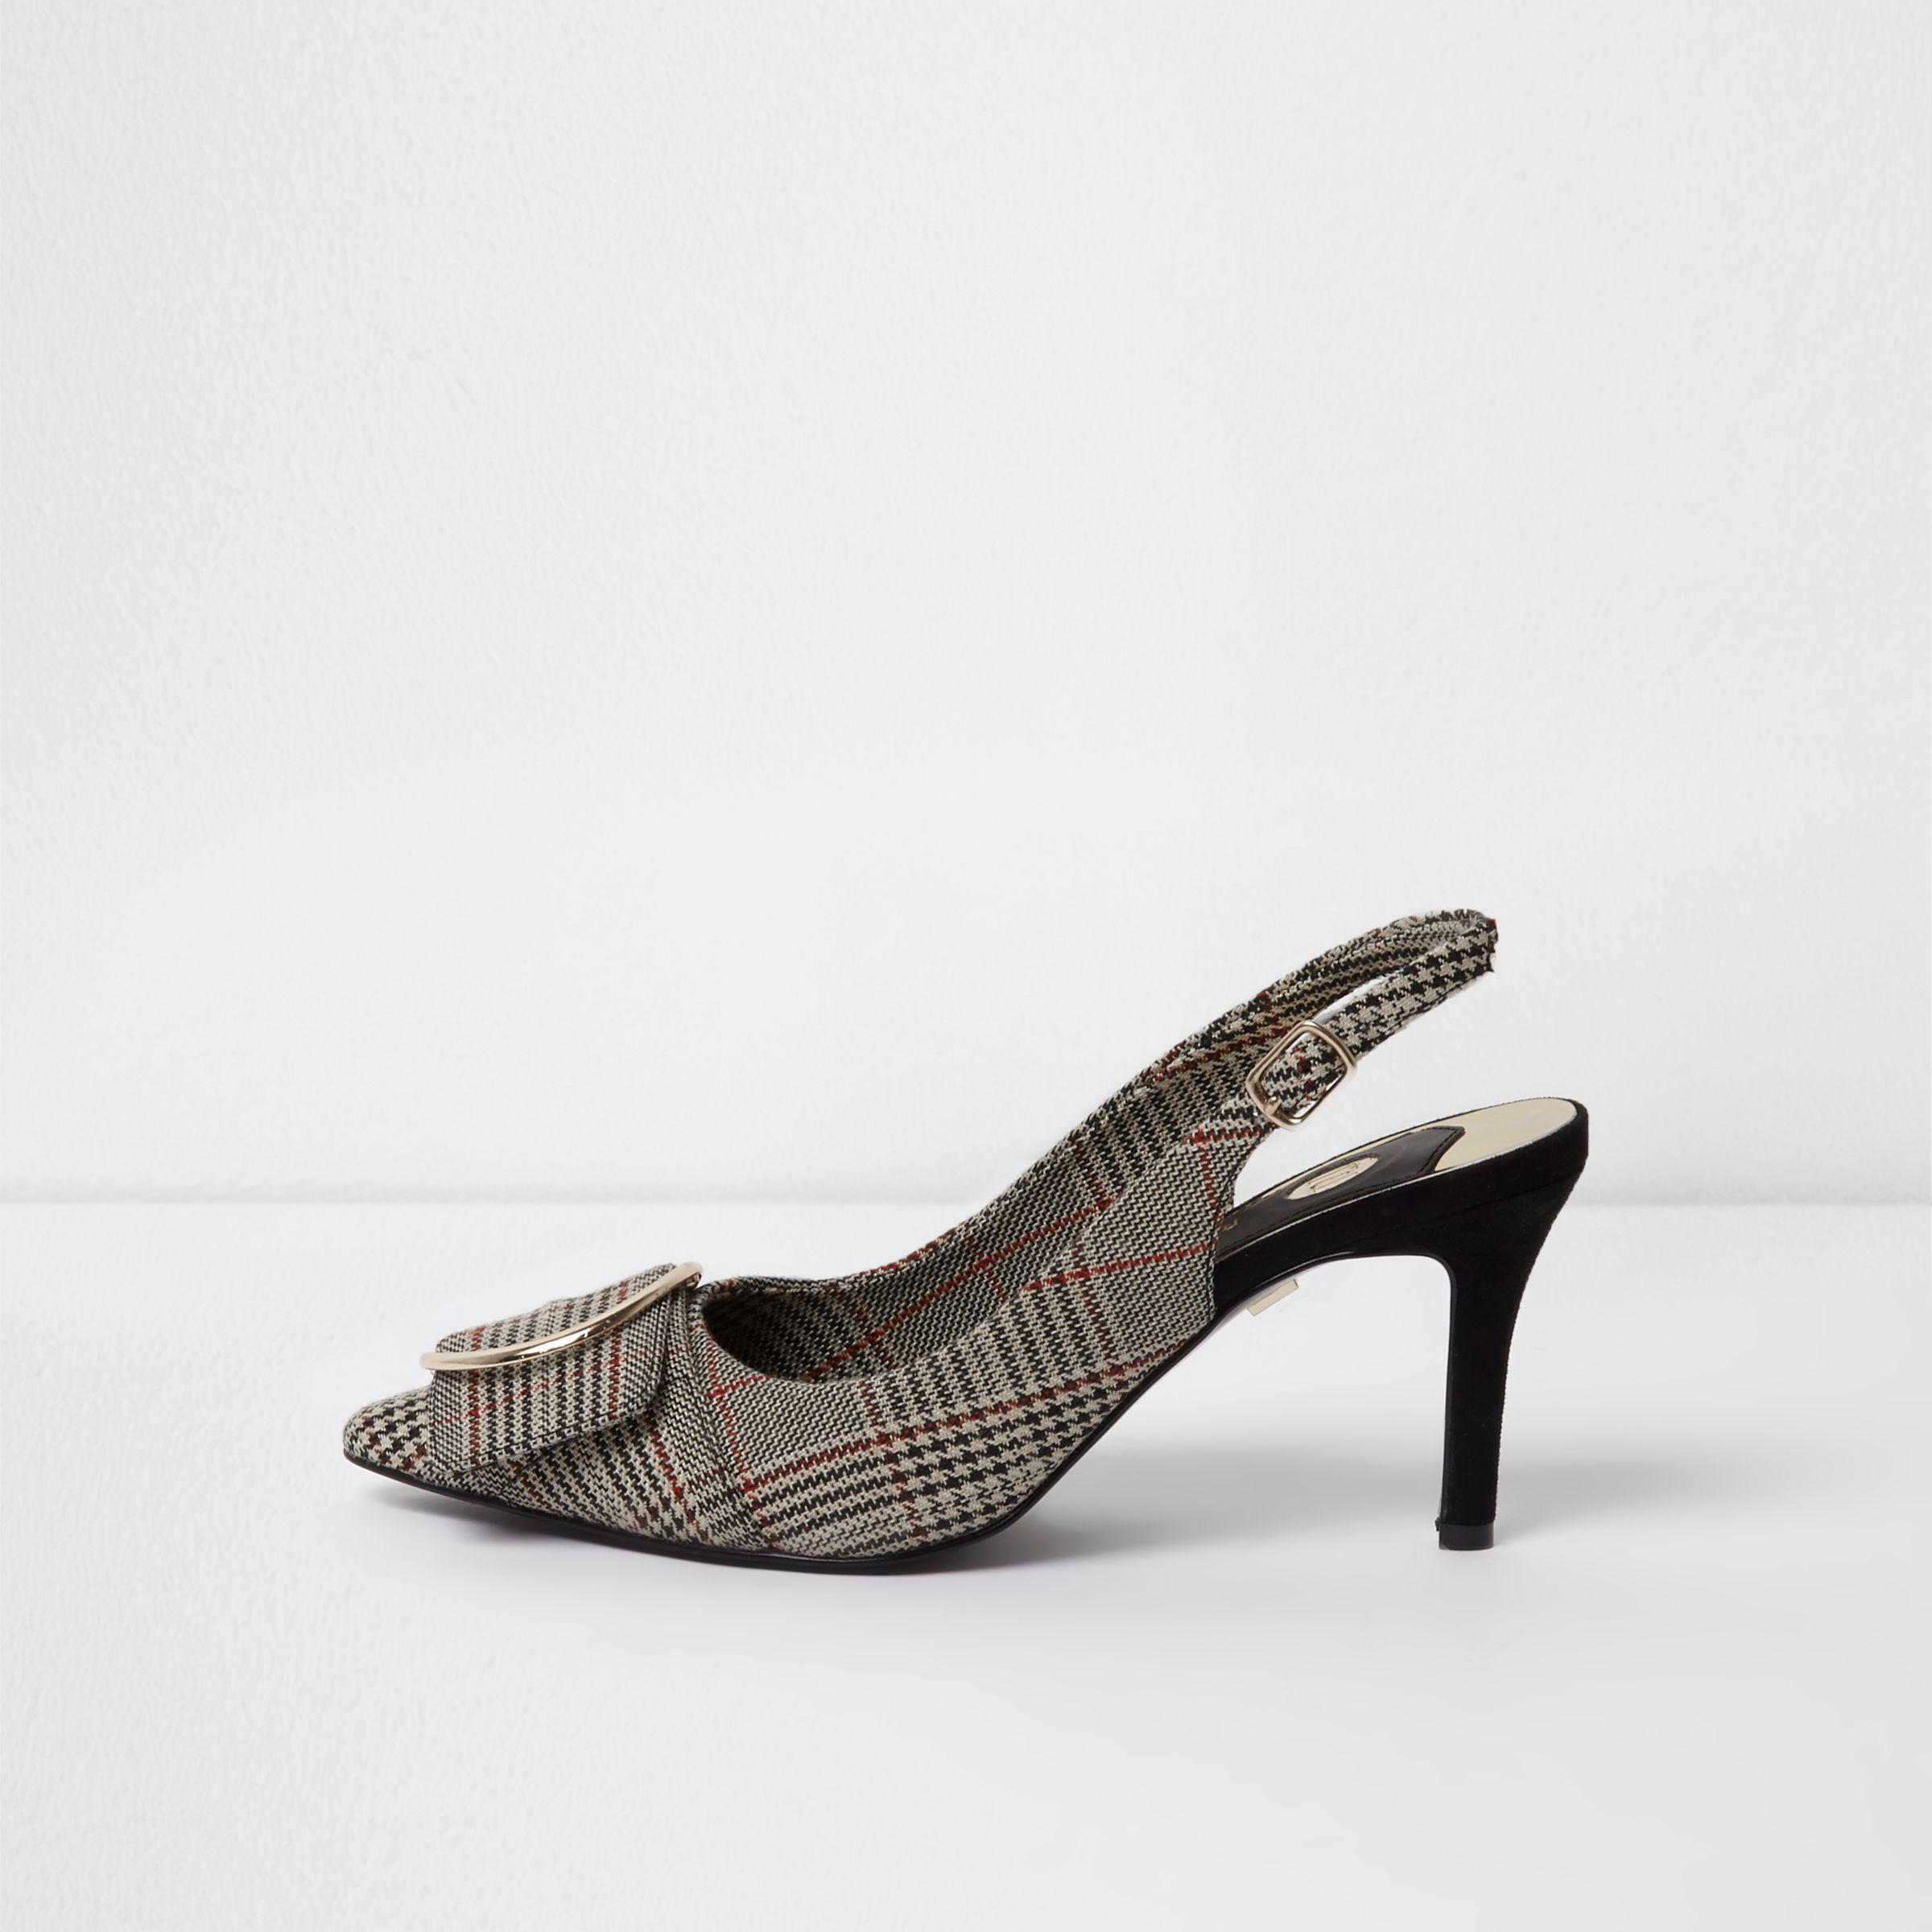 53a49a76e87 Lyst - River Island Black Check Pointed Sling Back Kitten Heels in Black